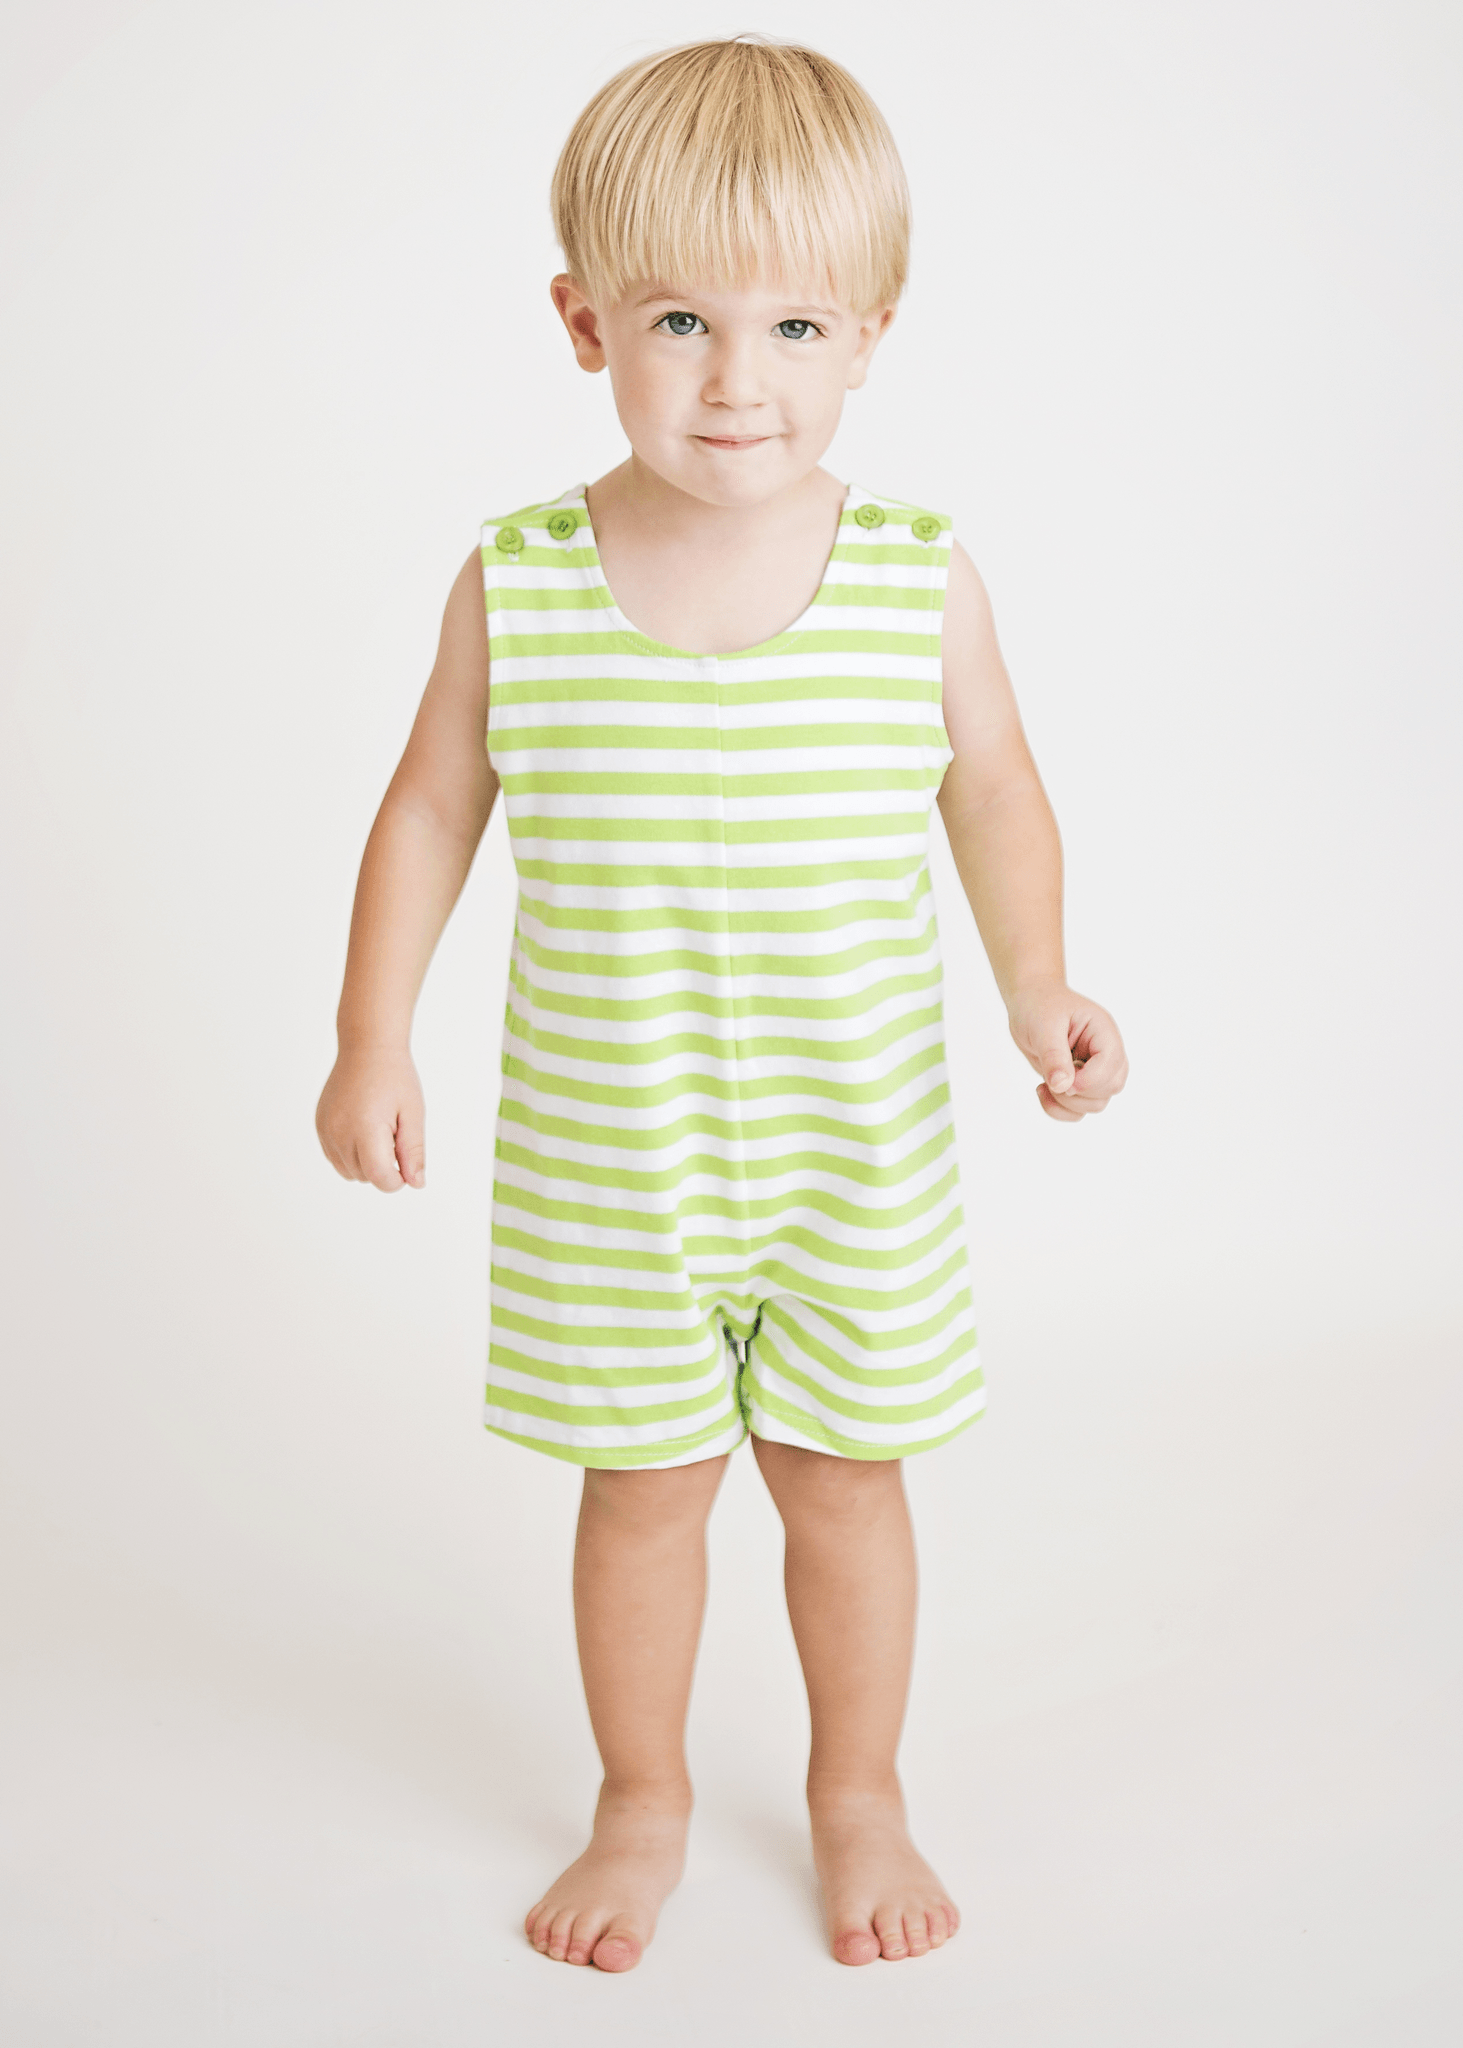 Green Striped Knit Boys Shortall